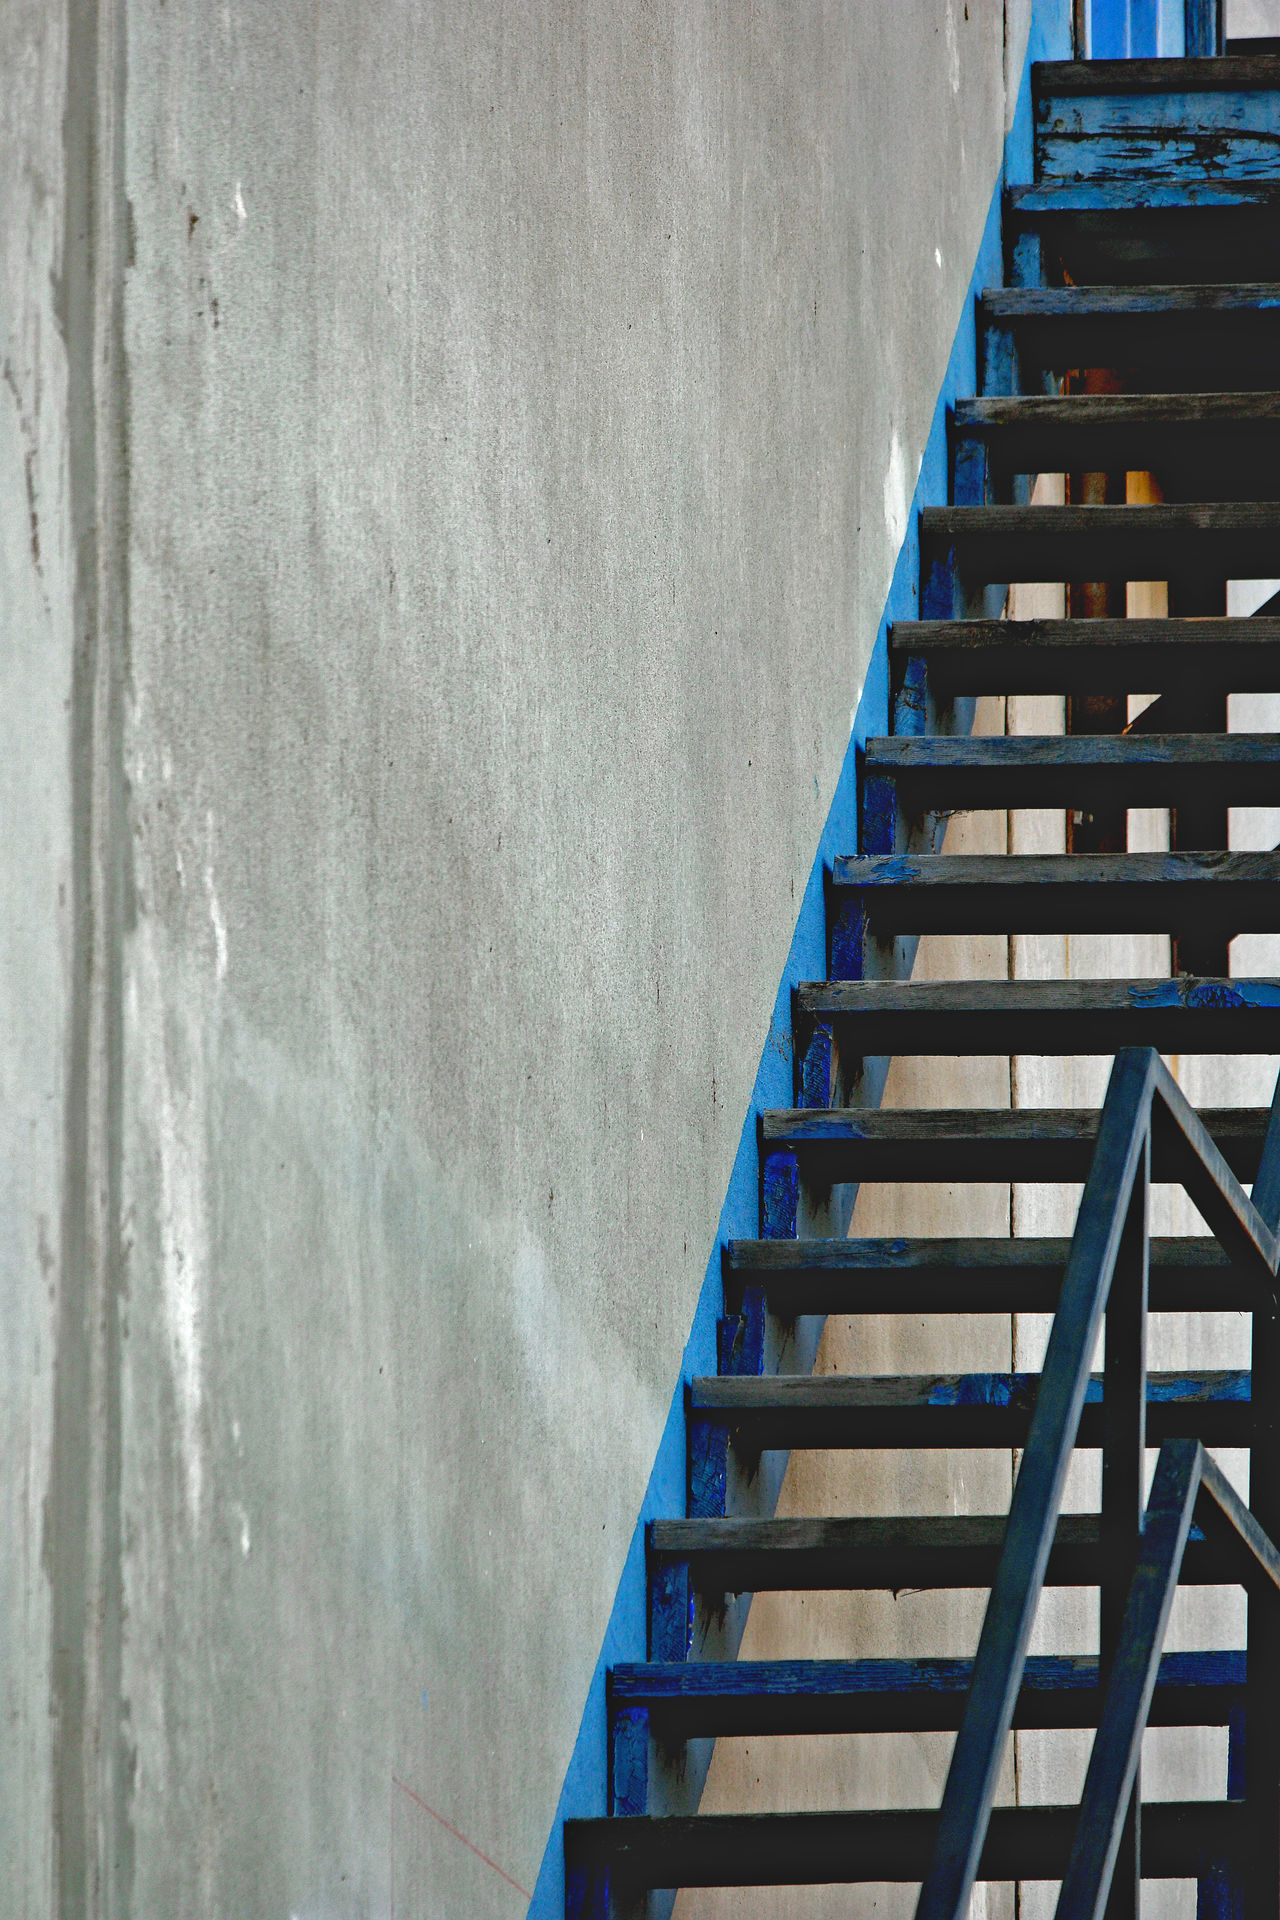 Steps Staircase Steps And StaircasesStairways Stairs_collection Stairway Concrete Wall Concrete Stair Going Up Staircases No People Stairway To Heaven Door Blue Stairs Steps Wall Concrete Jungle Factory Industry Angles And Lines Architecture Close-up Railing Stairs